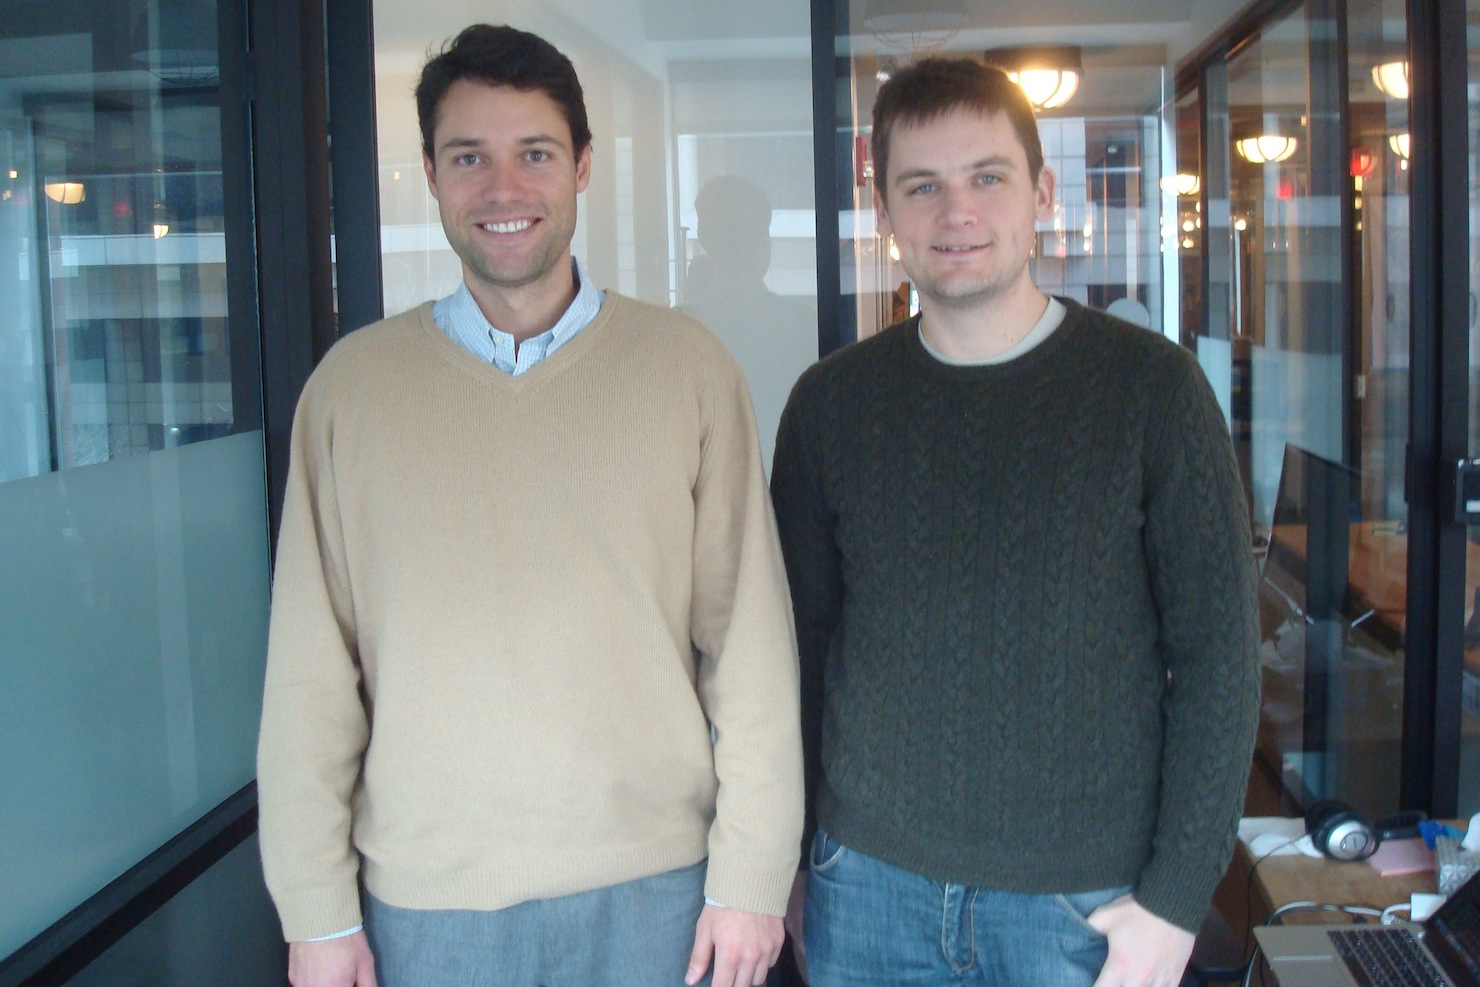 Beansprock founders Cameron Levy (left) and Dustin Smith